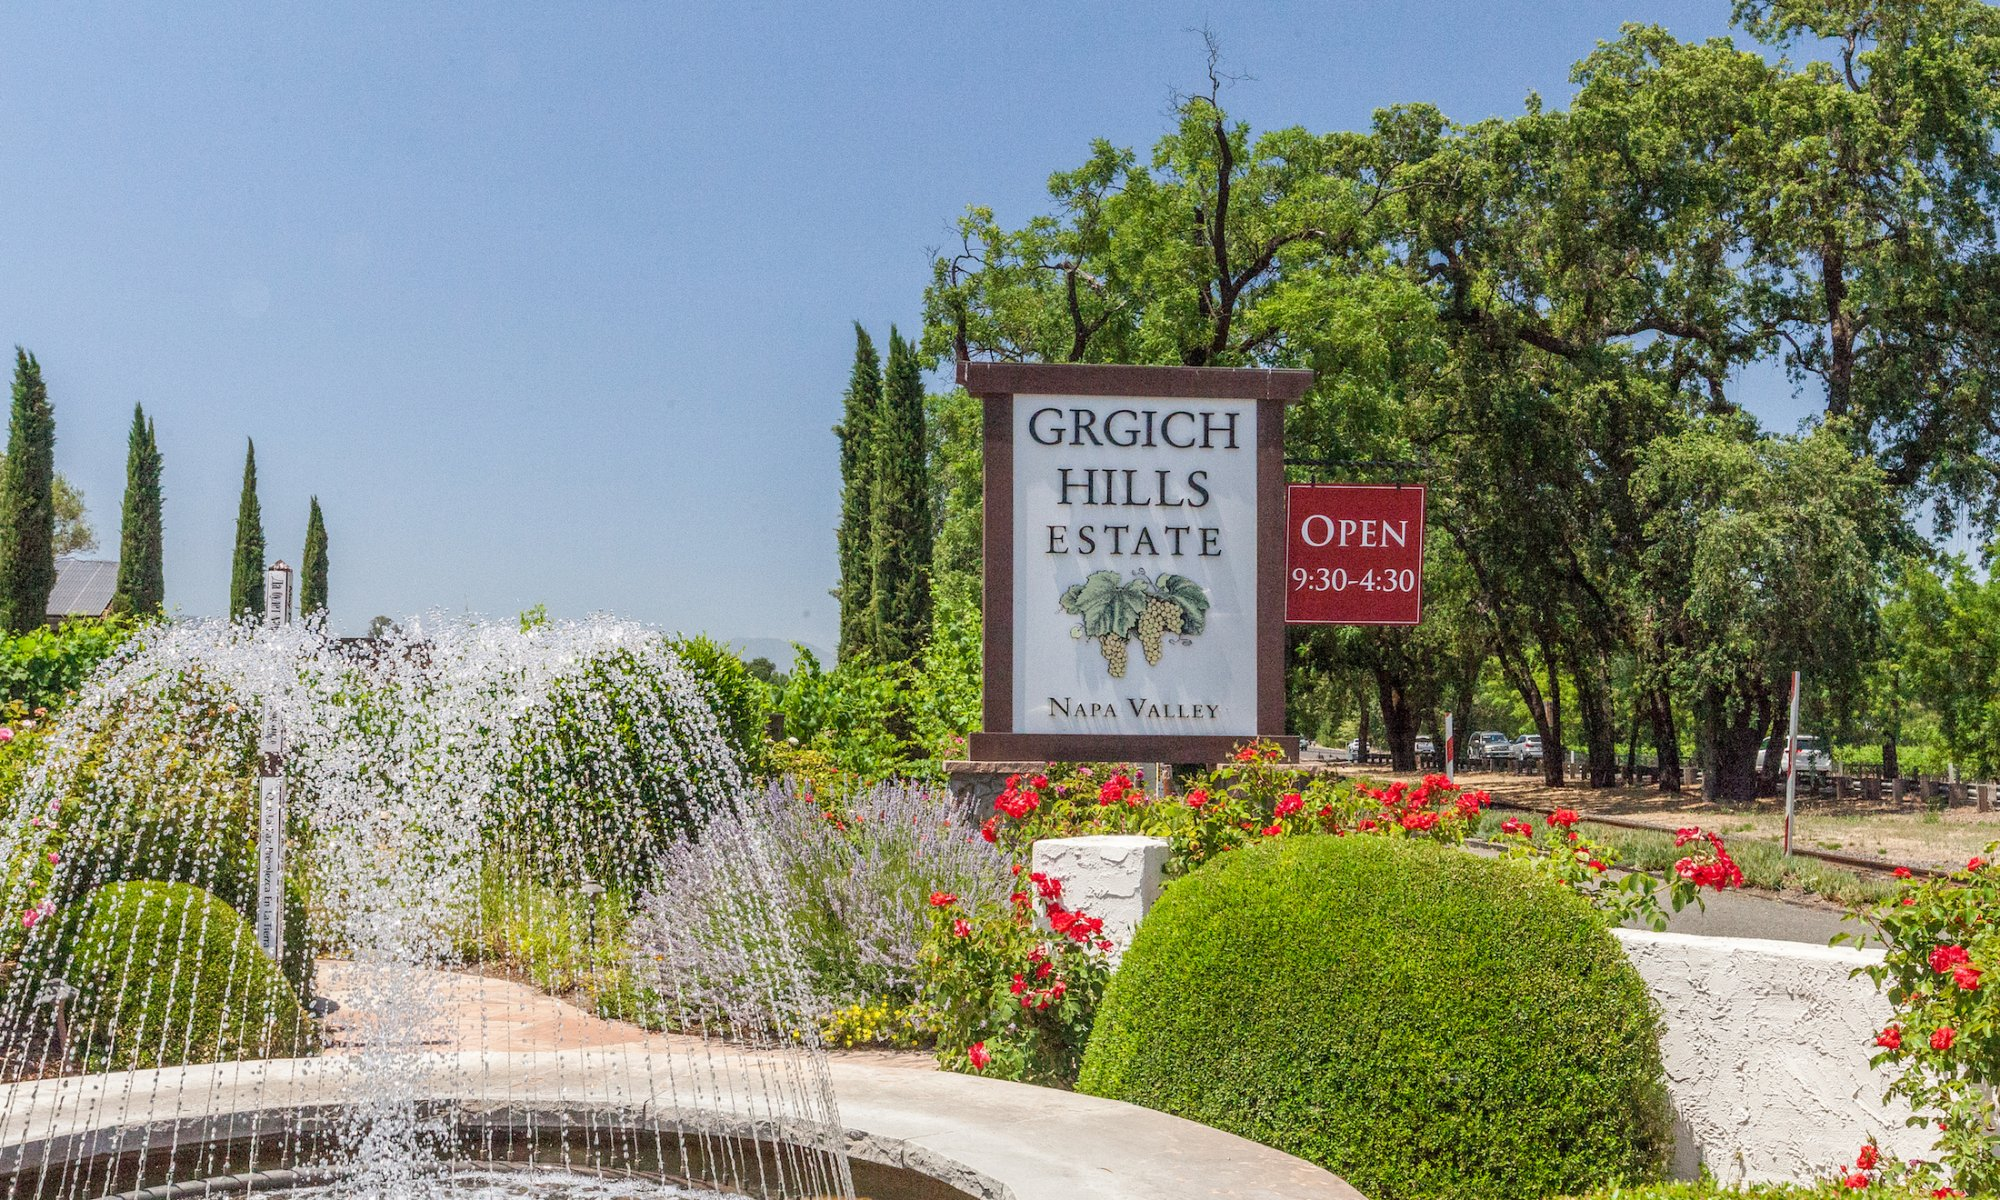 The entrance to Grgich Hills Estate Winery on a sunny day.